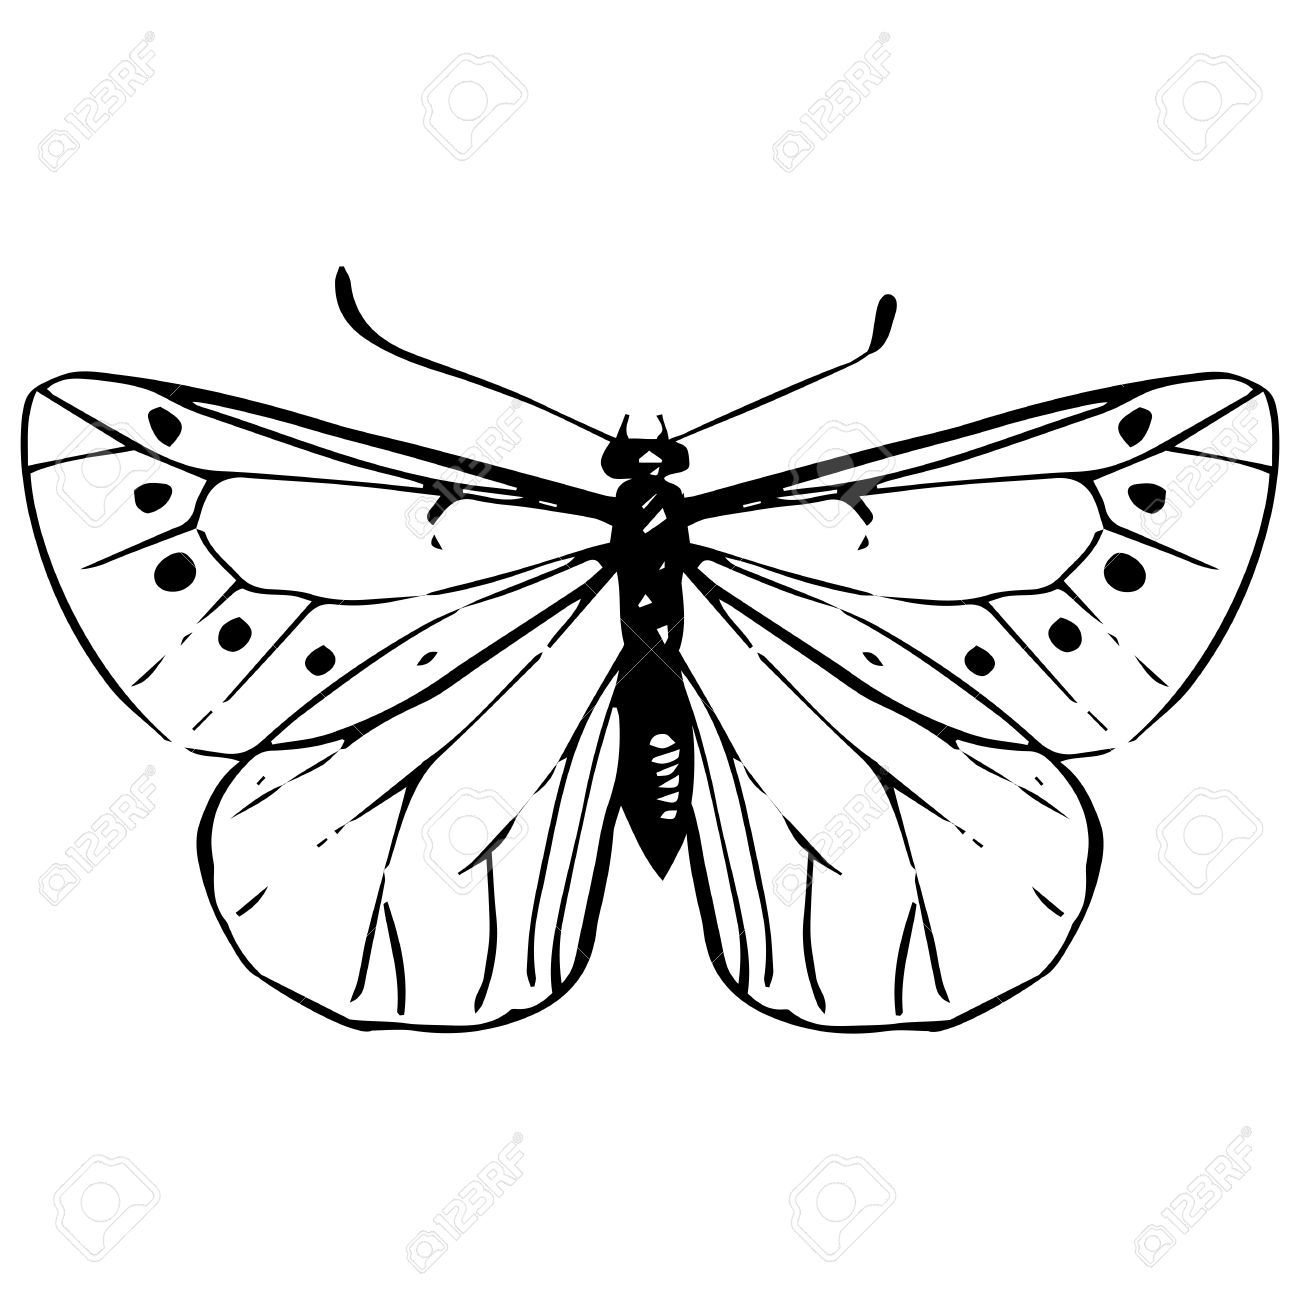 45503589-cabbage-moth-hand-drawn-butterfly-black-veined